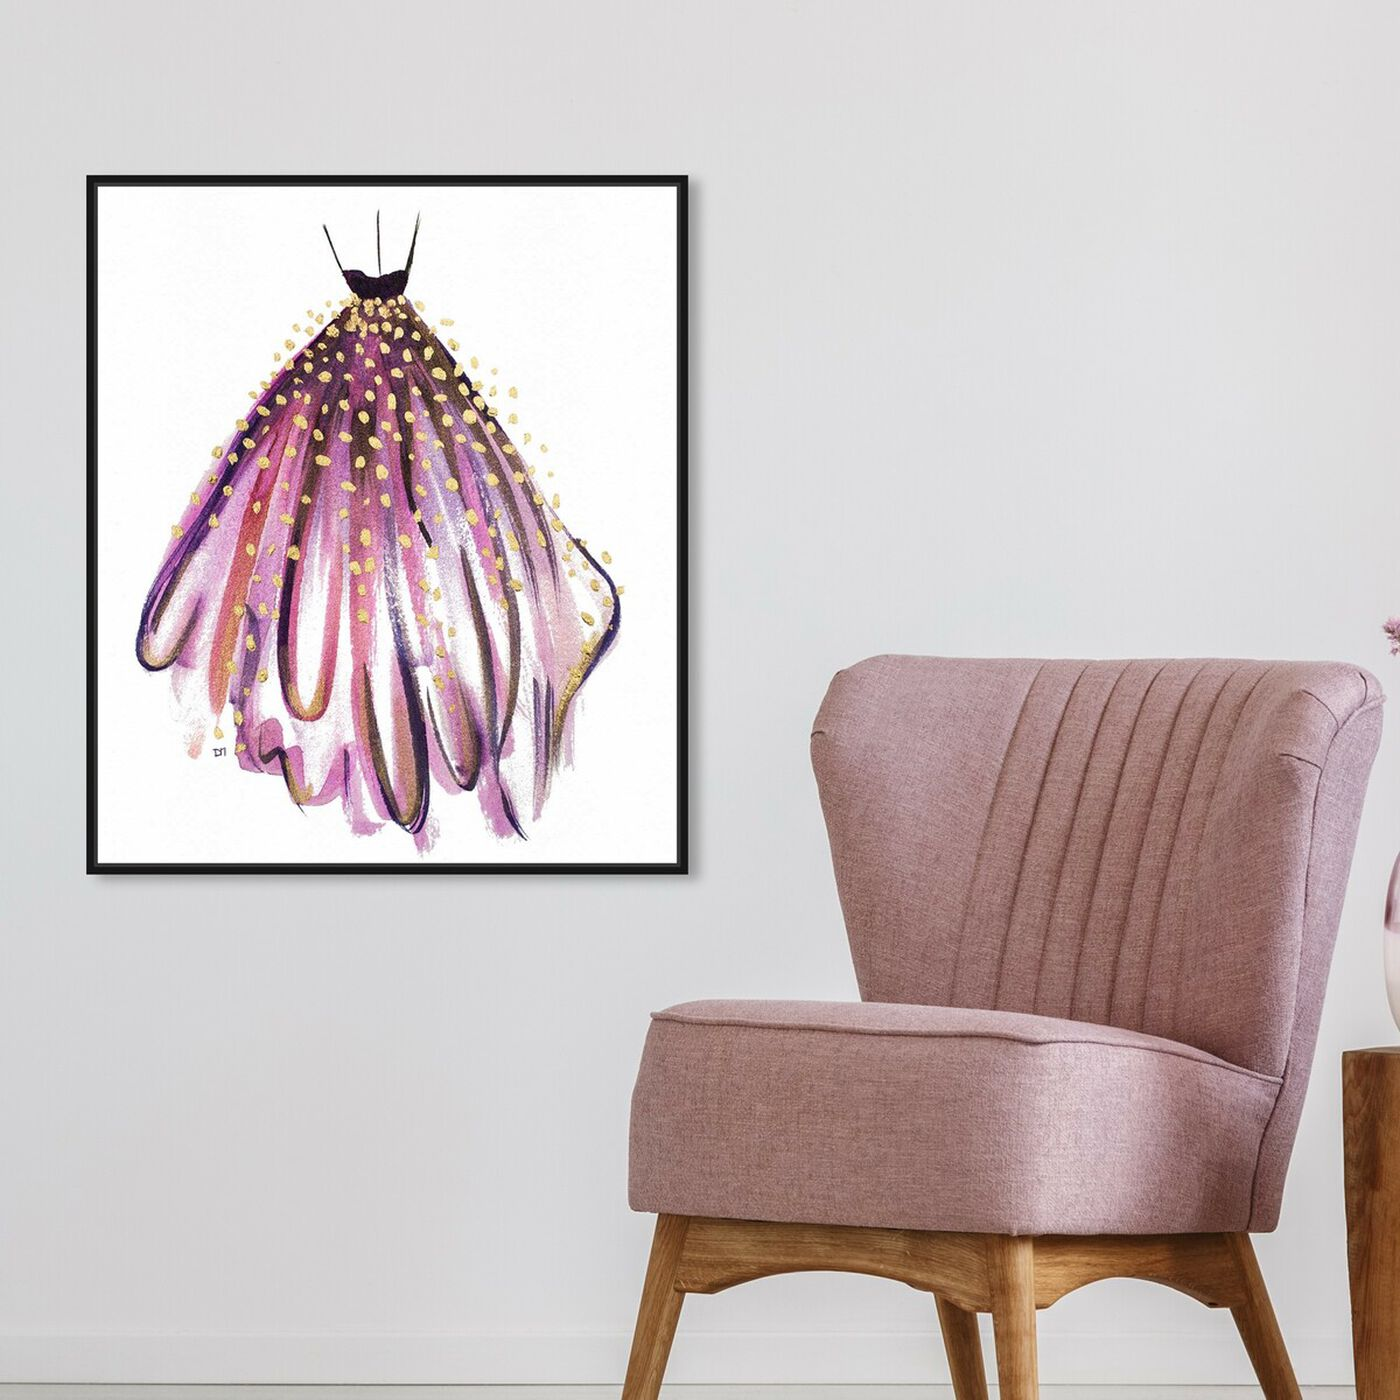 Hanging view of Purple Magic featuring fashion and glam and dress art.